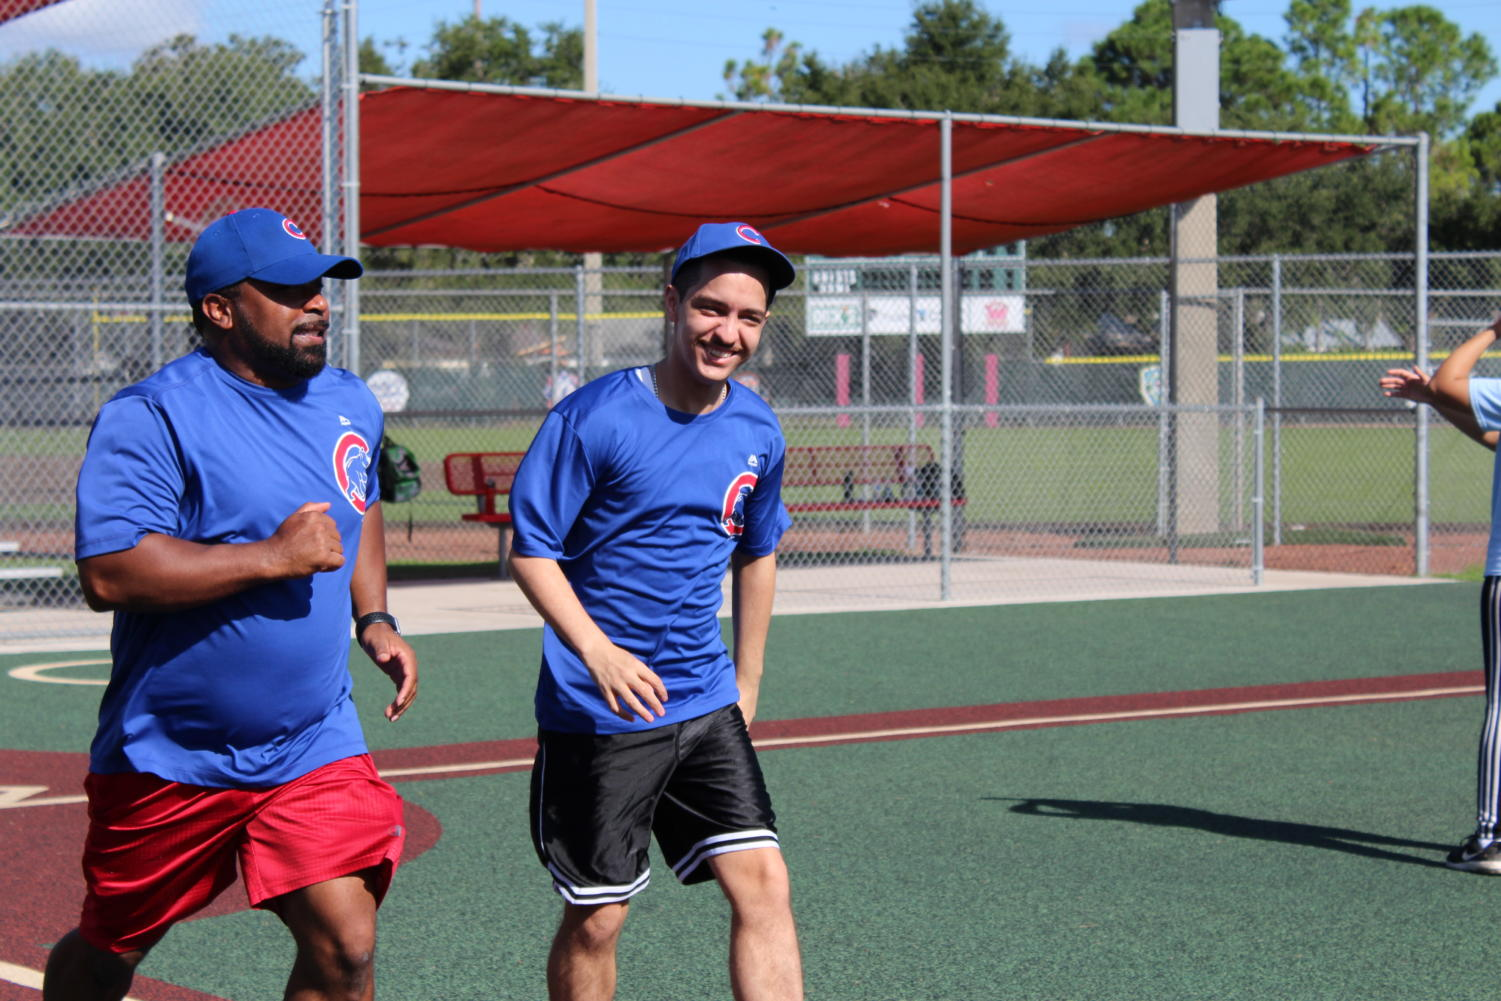 A+player+and+his+coach+run+to+first+base+after+the+player+has+hit+the+ball+during+Buddy+Ball+on+Saturday+October+20+at+the+Eastmonte+baseball+fields.+Buddy+Ball+focuses+on+engagement+and+fun%2C+not+points+or+accuracy.%0A